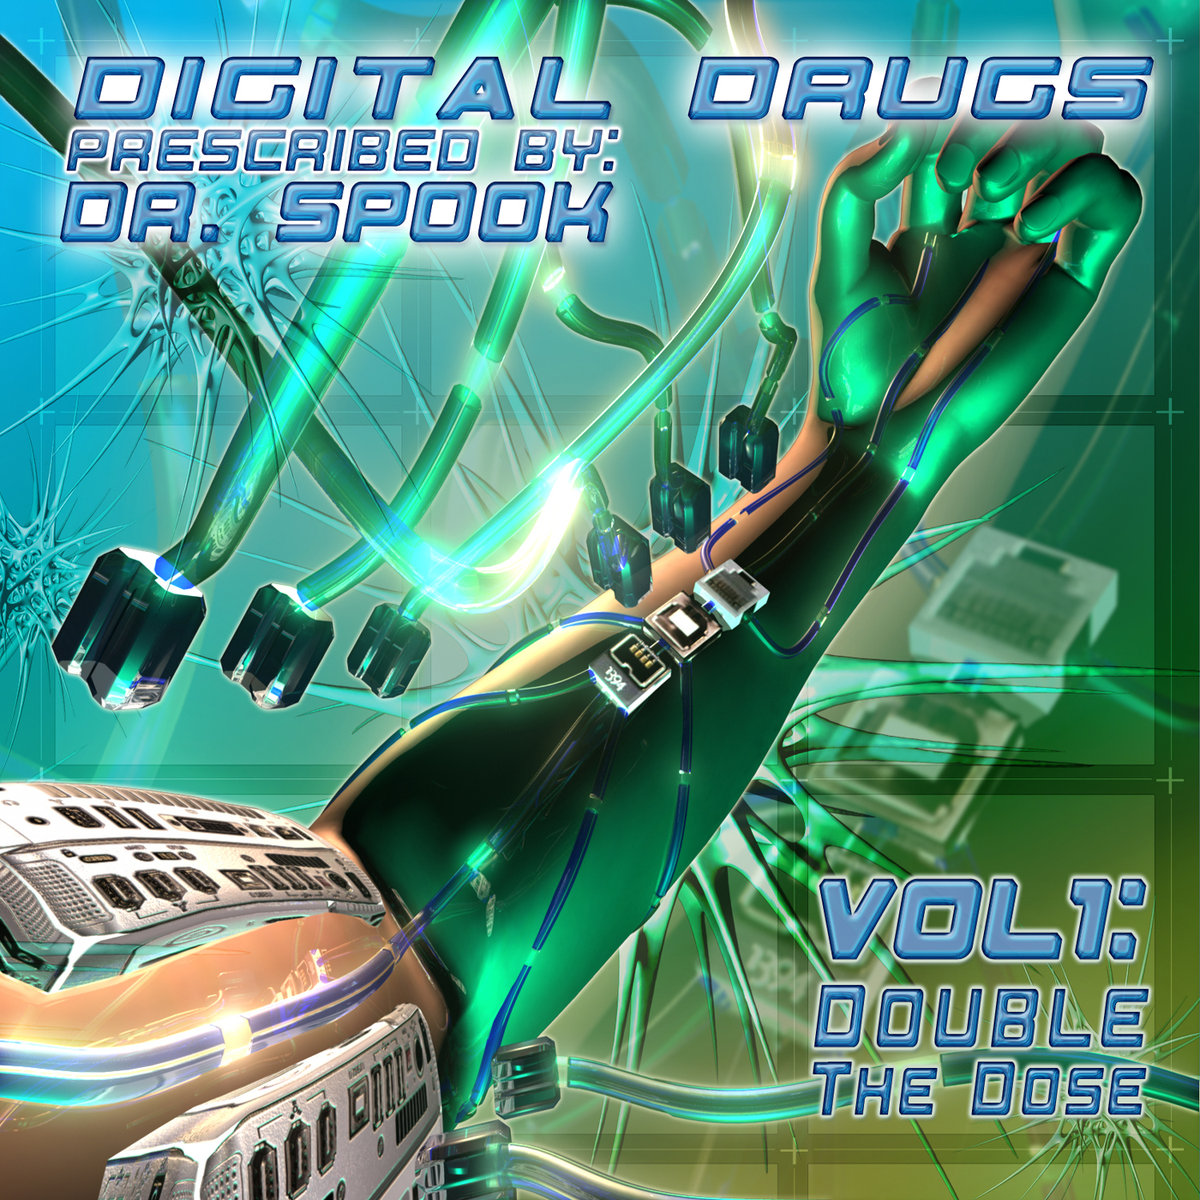 Spiral - Idiotic Legion @ 'Various Artists - Digital Drugs Vol.1: Double the Dose (Prescribed by Dr. Spook)' album (electronic, goa)